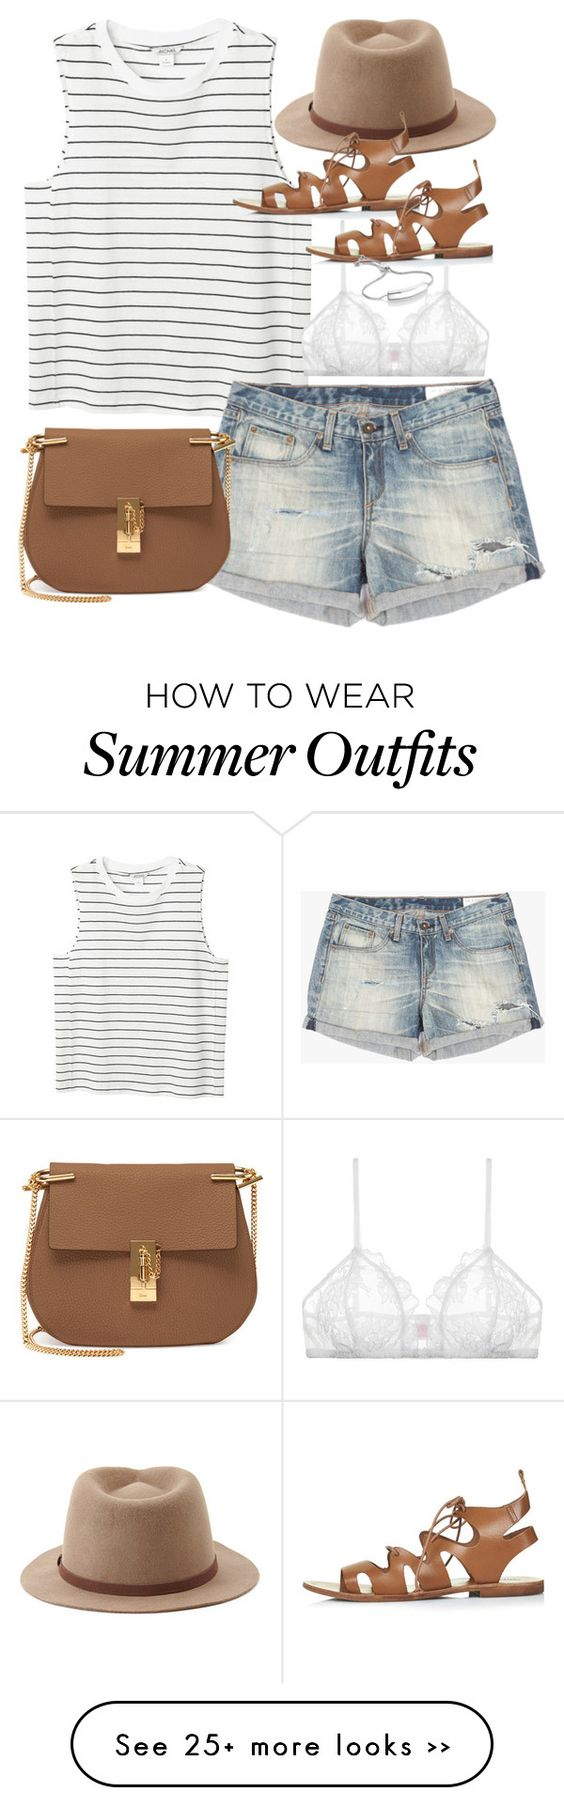 """Outfit for summer vacation"" by ferned on Polyvore"